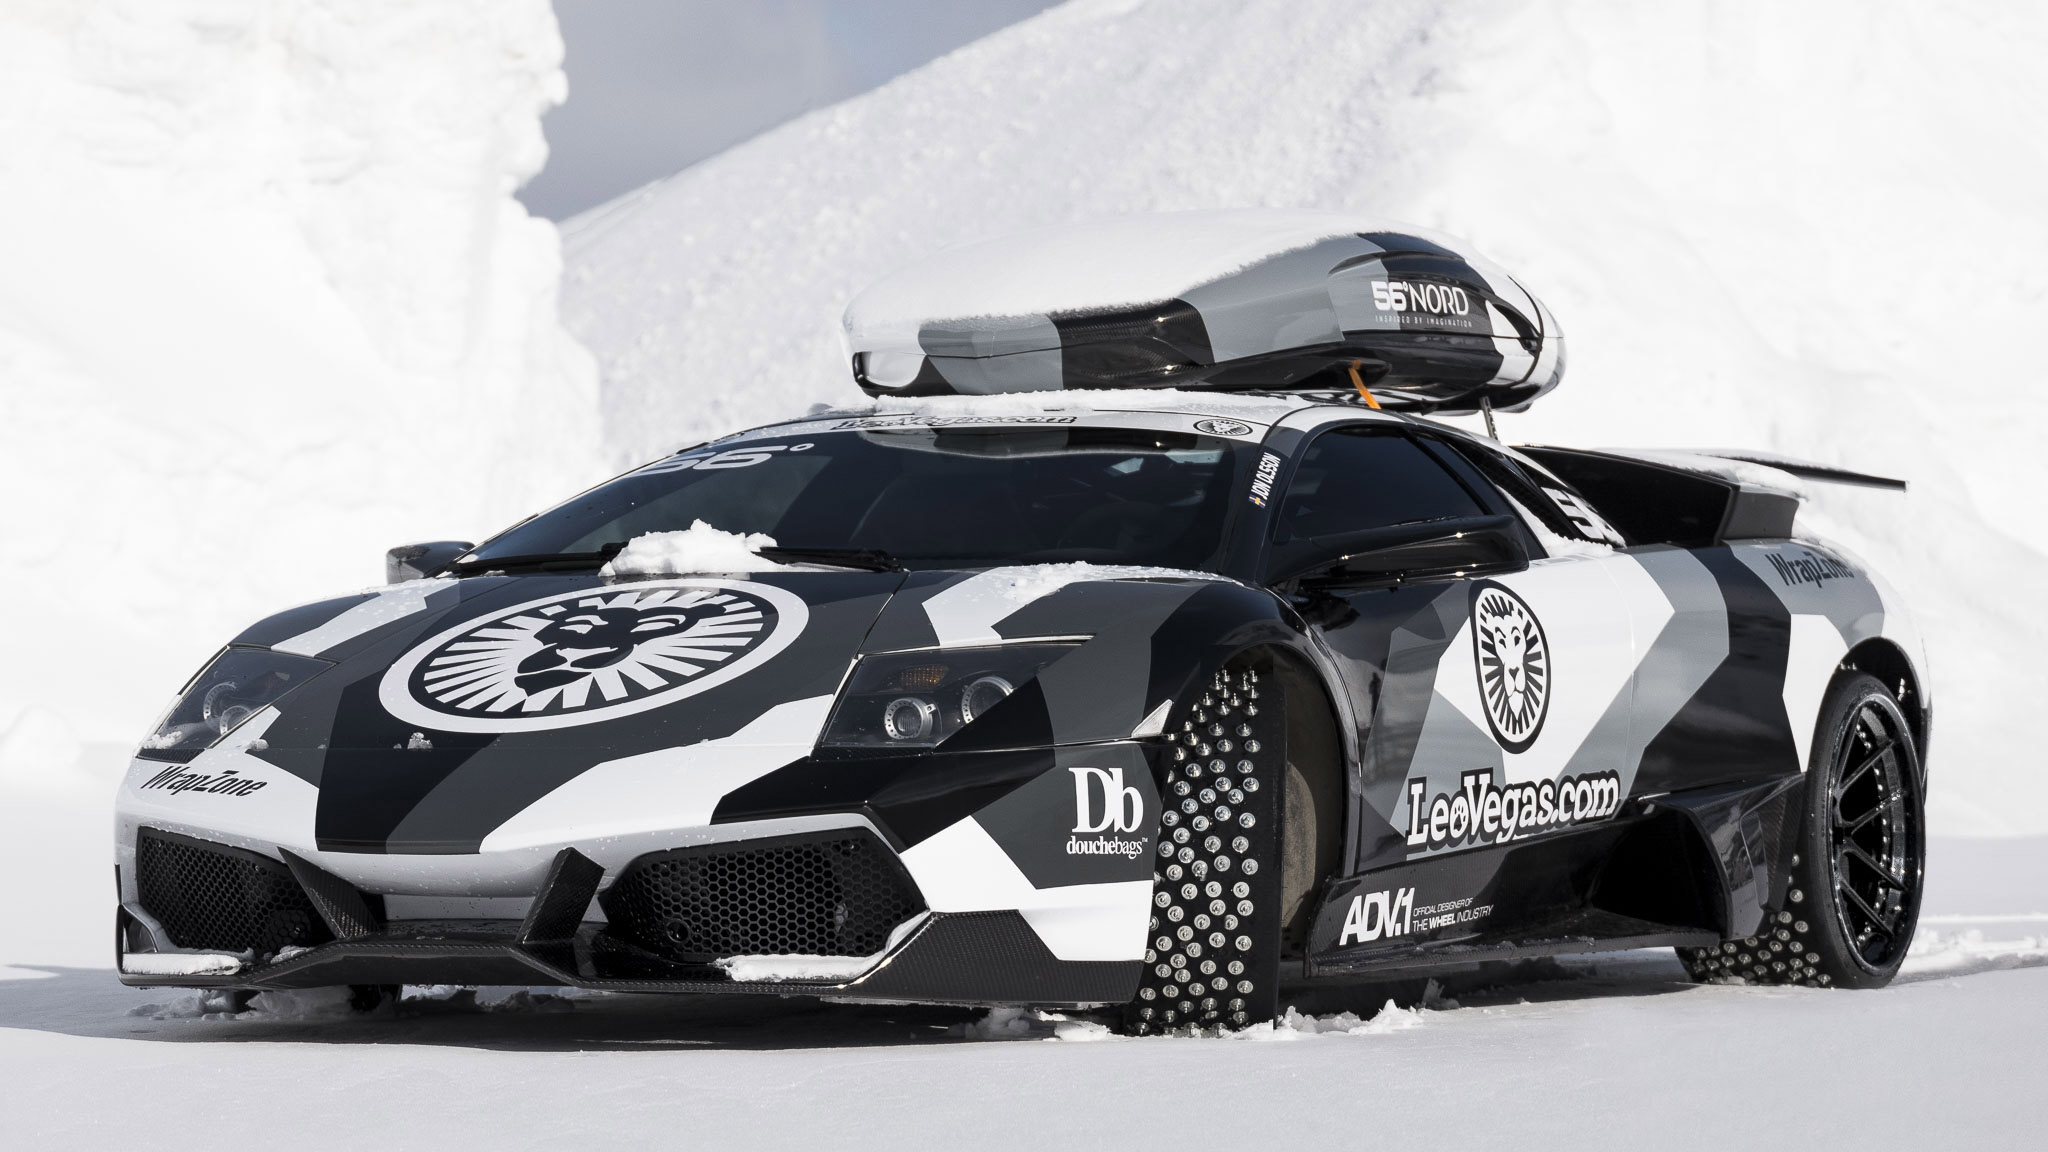 Jon Olsson Lamborghini Murcielago put to the extreme mountain ...